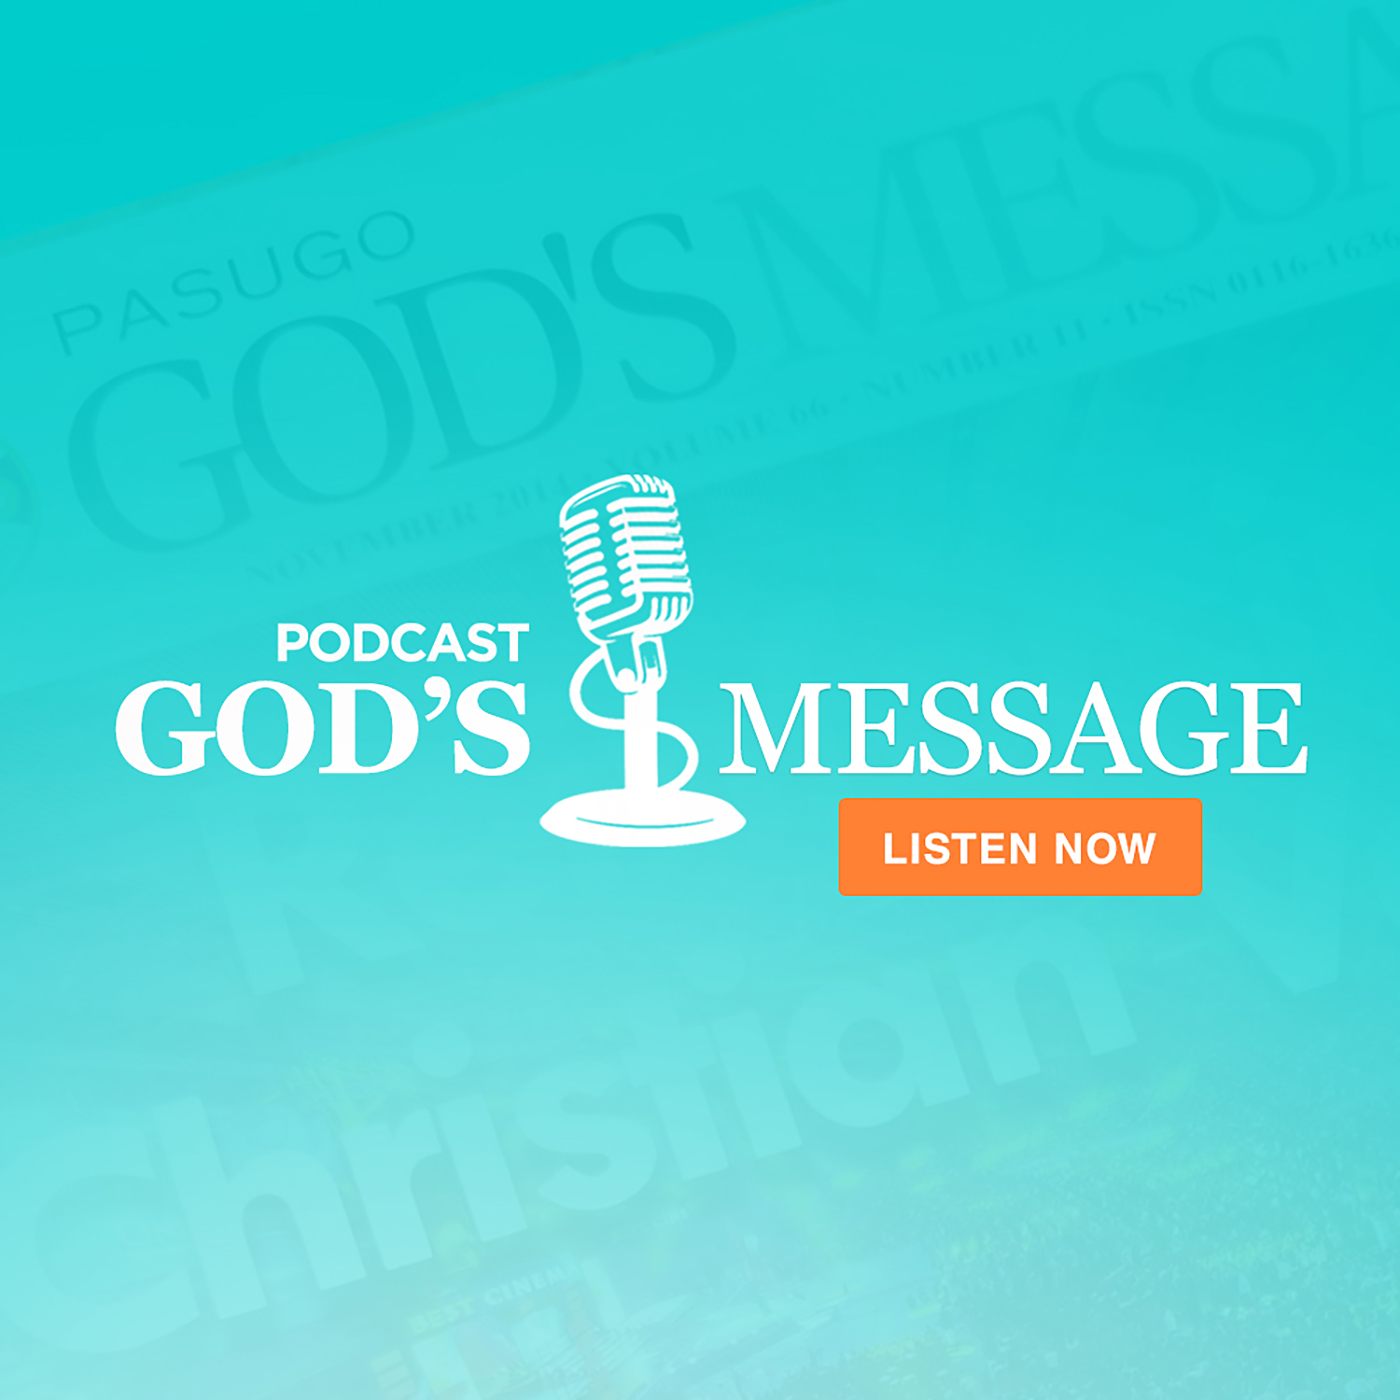 God's Message Podcast